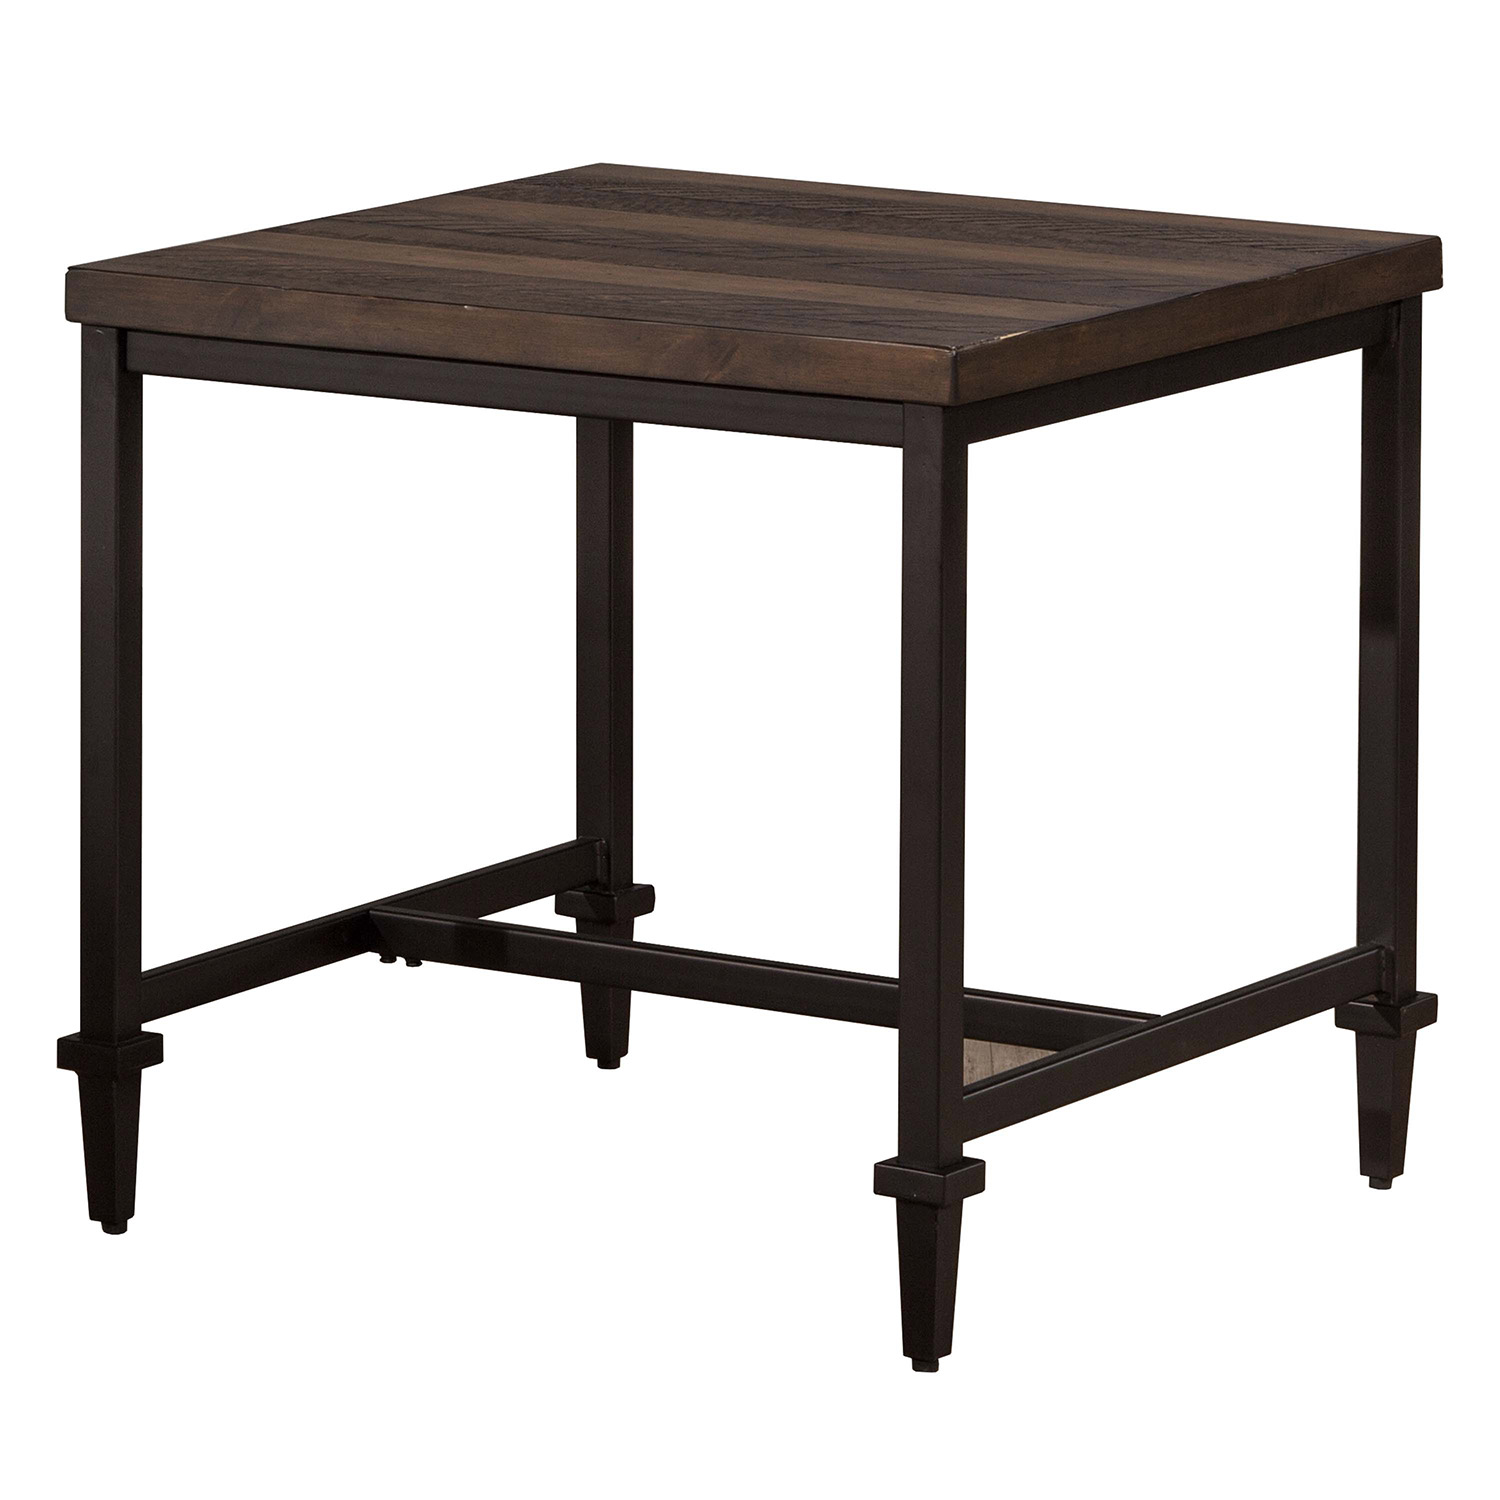 Hillsdale Trevino End Table - Walnut/Brown